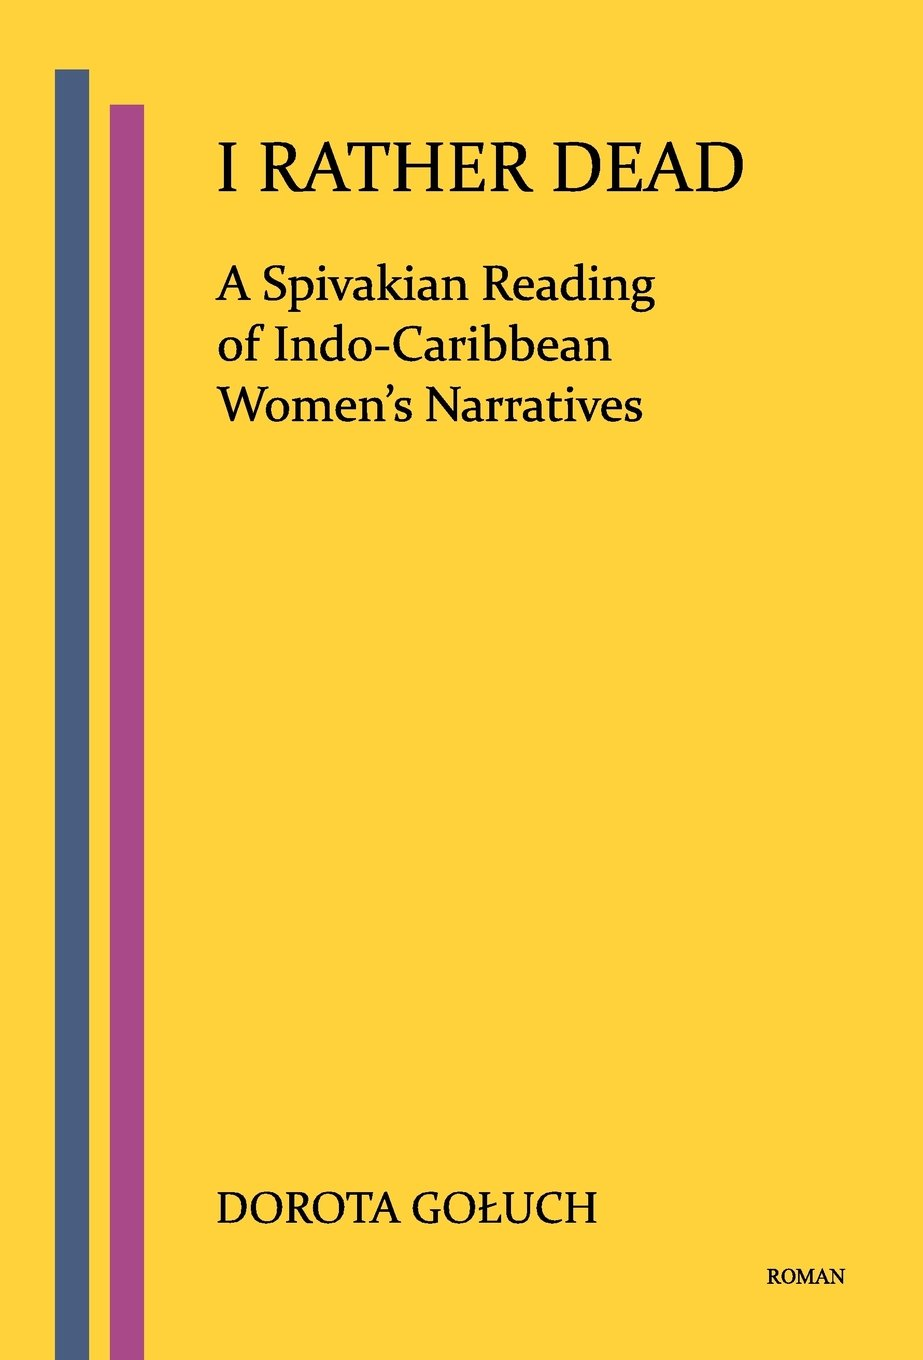 Read Online I RATHER DEAD: A Spivakian Reading of Indo-Caribbean Women's Narratives PDF